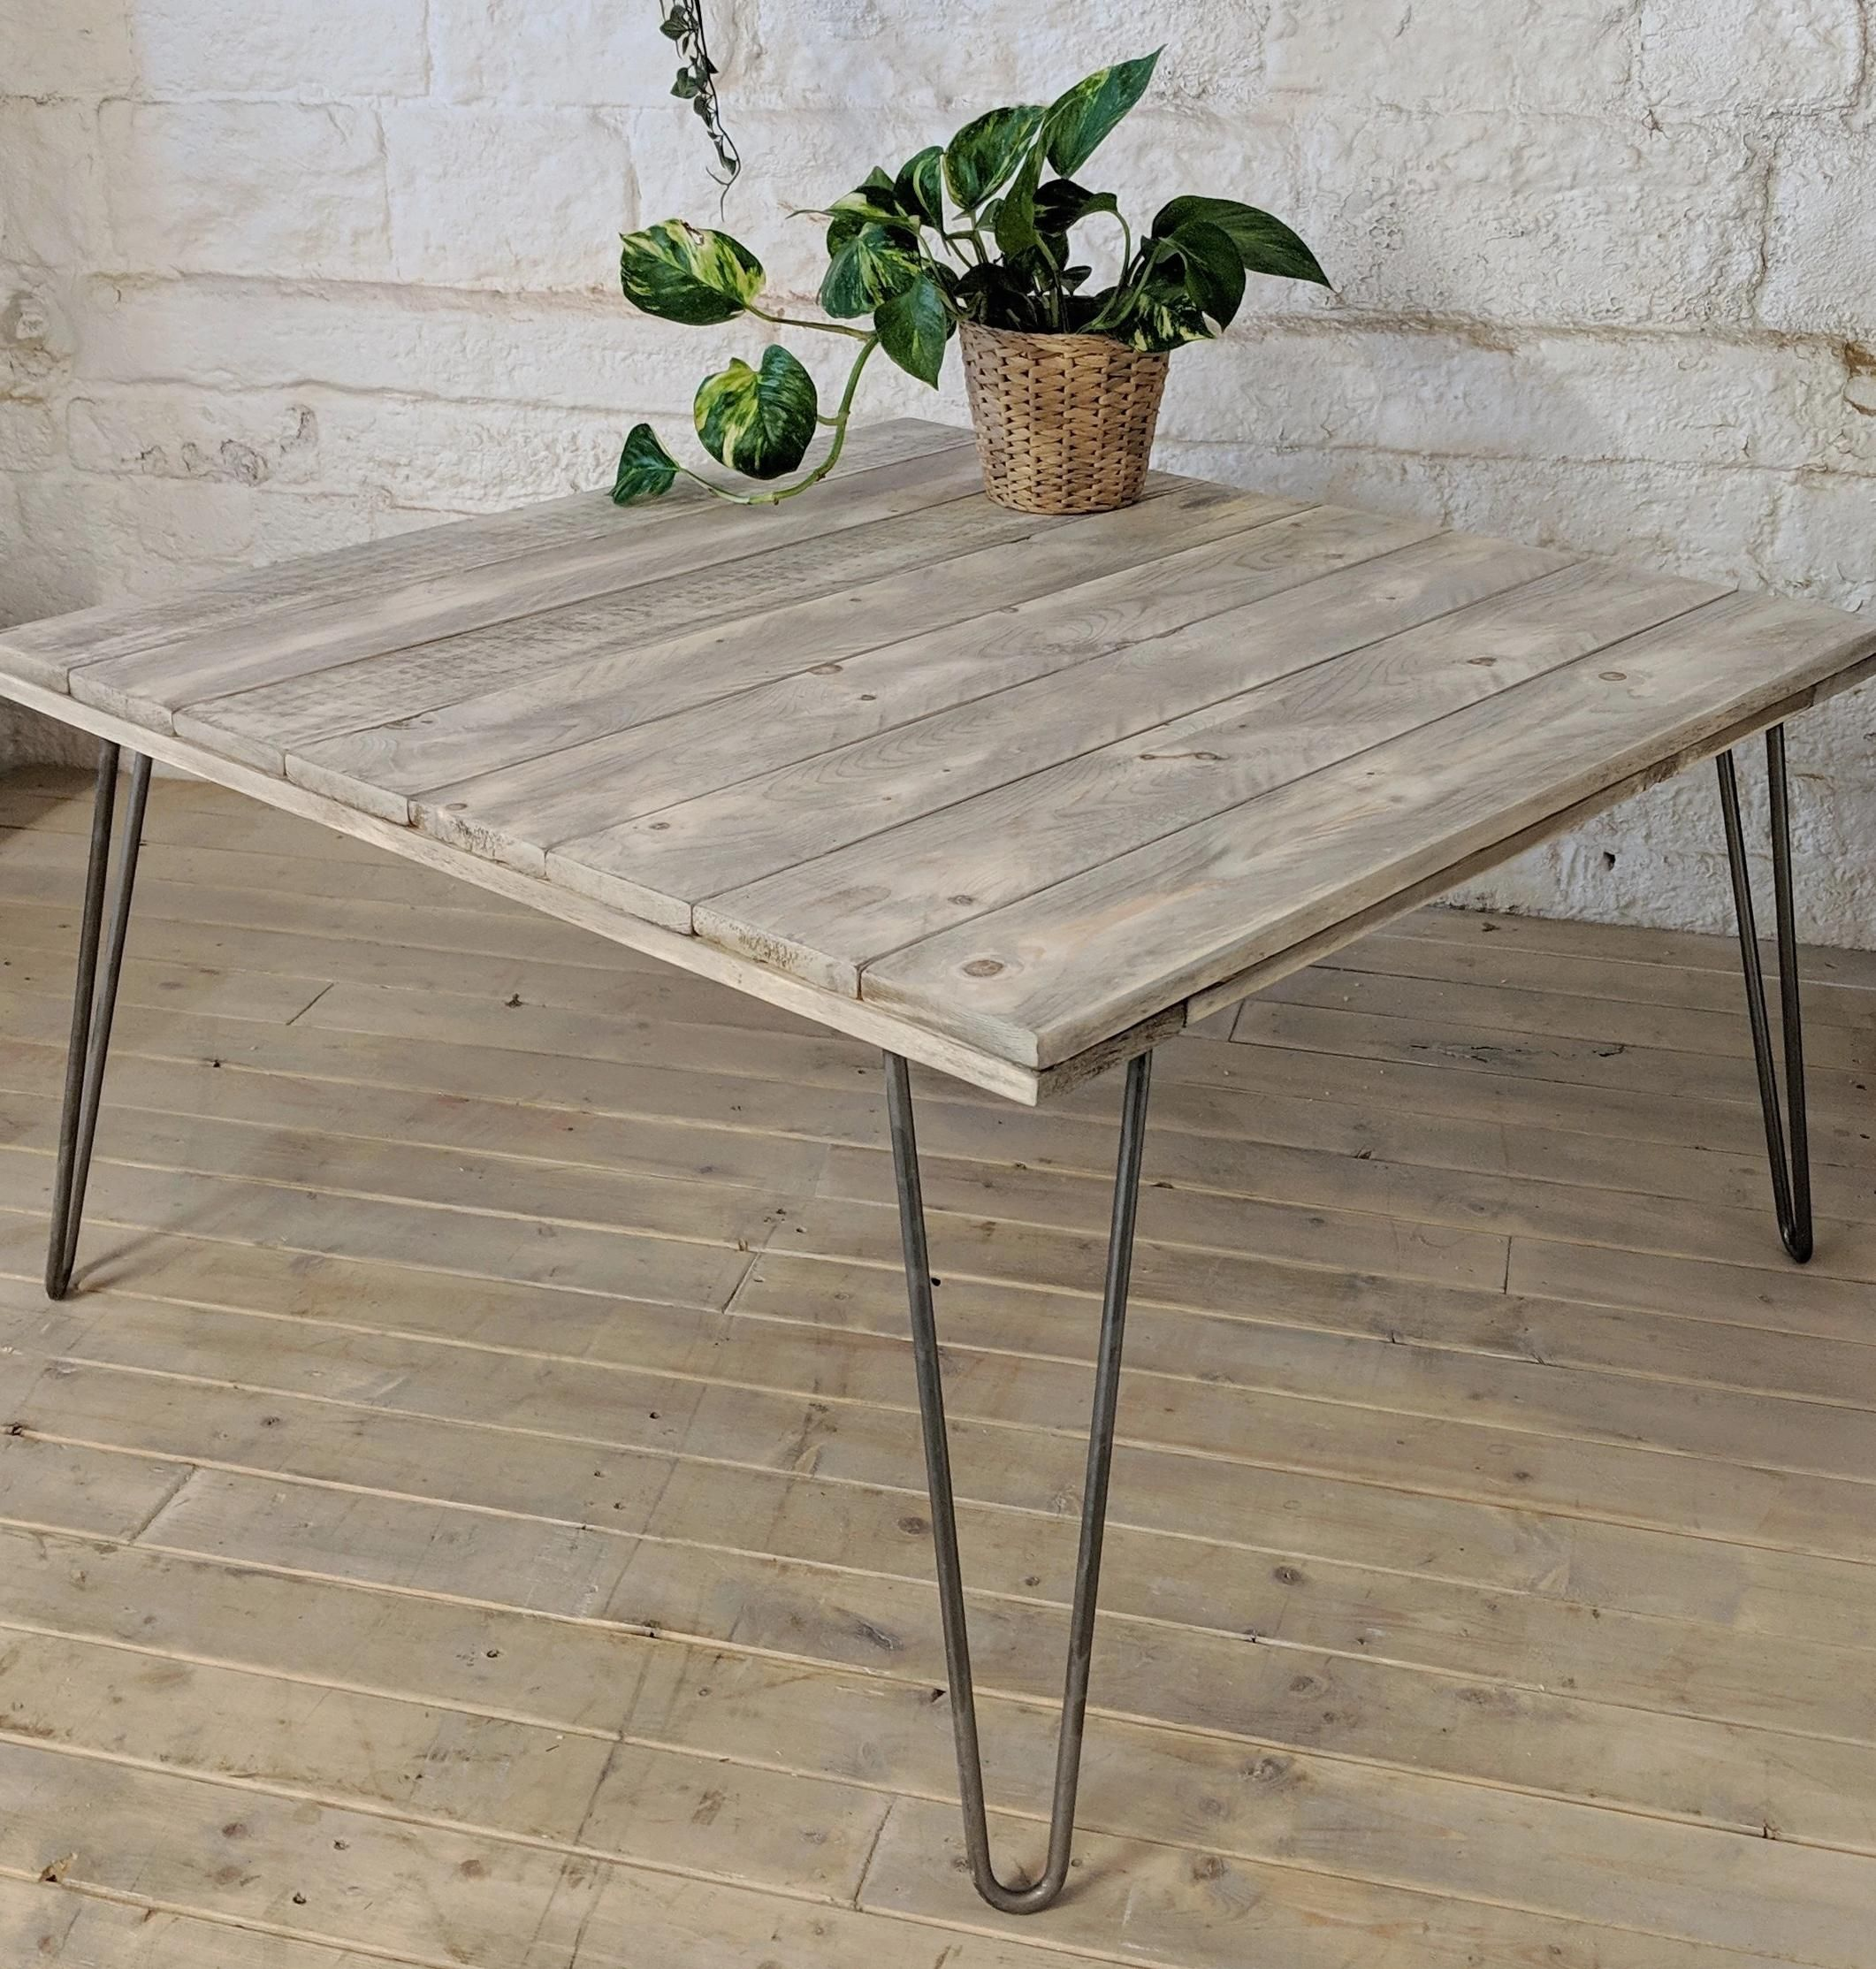 Pohi Pallet Wood Coffee Table Grey Wash Effect With 40cm Hairpin Legs In 2020 Coffee Table Grey Table Wood Pallets